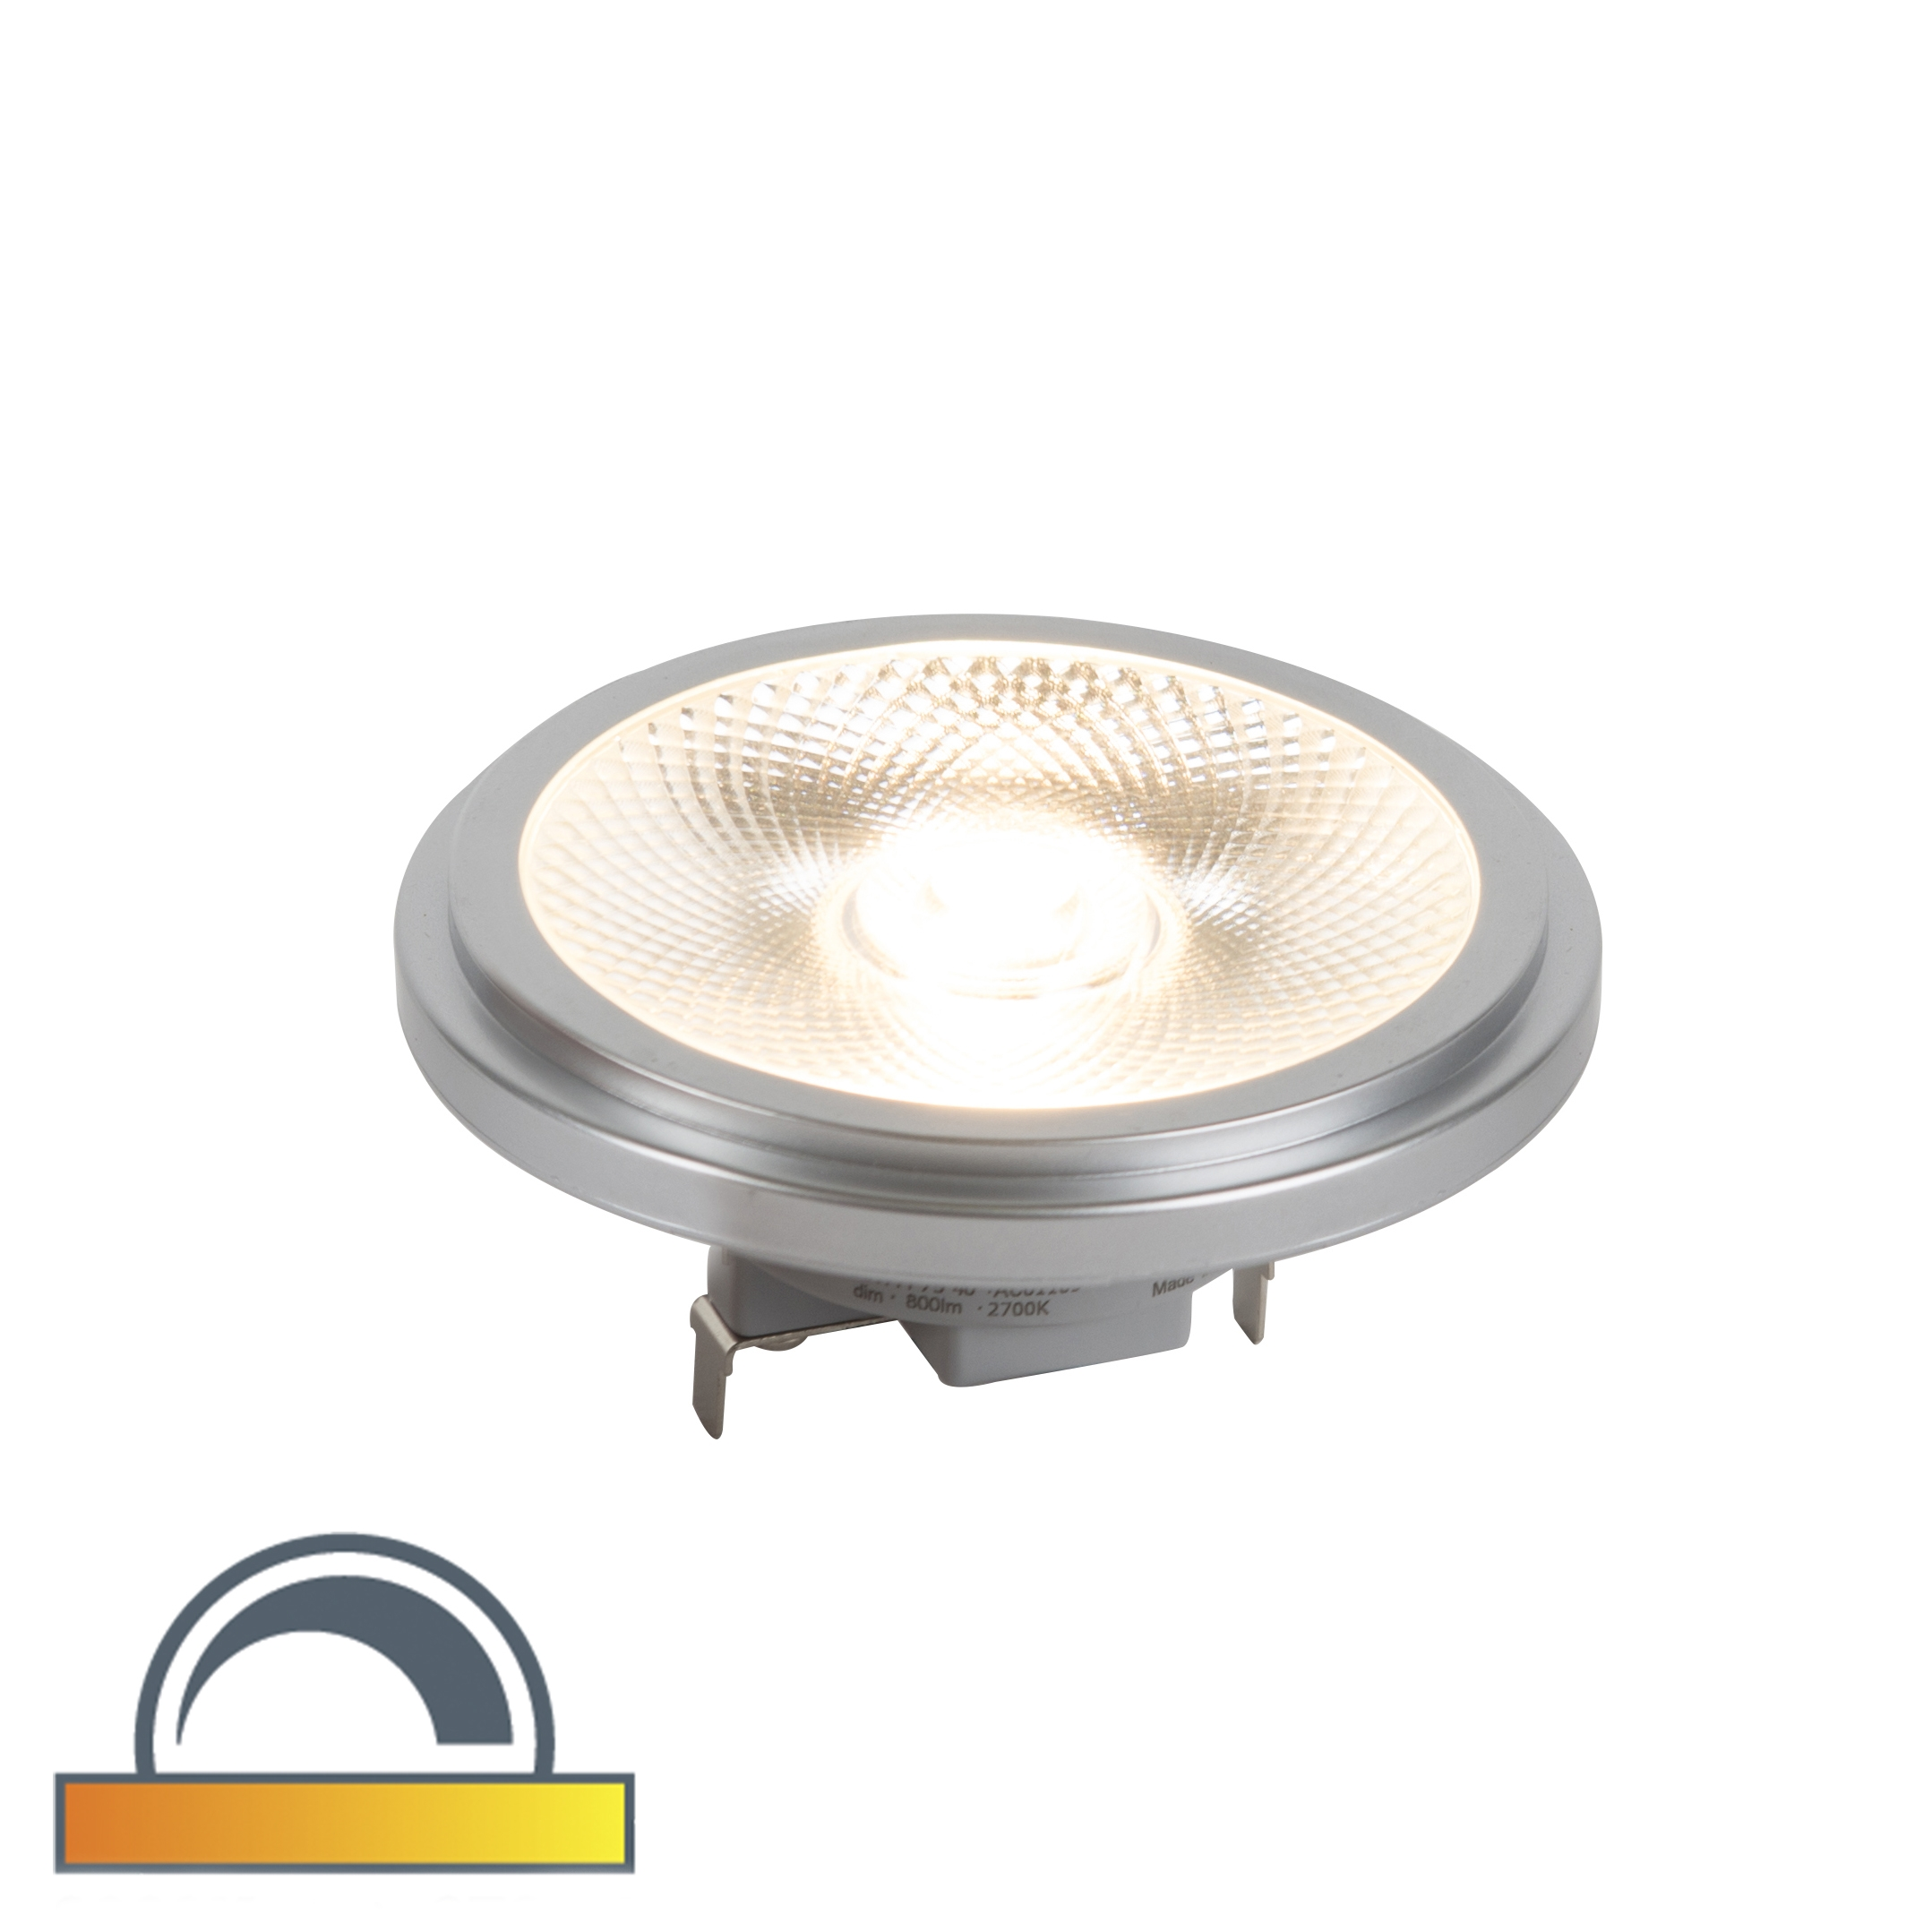 G53 AR111 Parathom pro LED lamp 24° 12W 650LM dim to warm